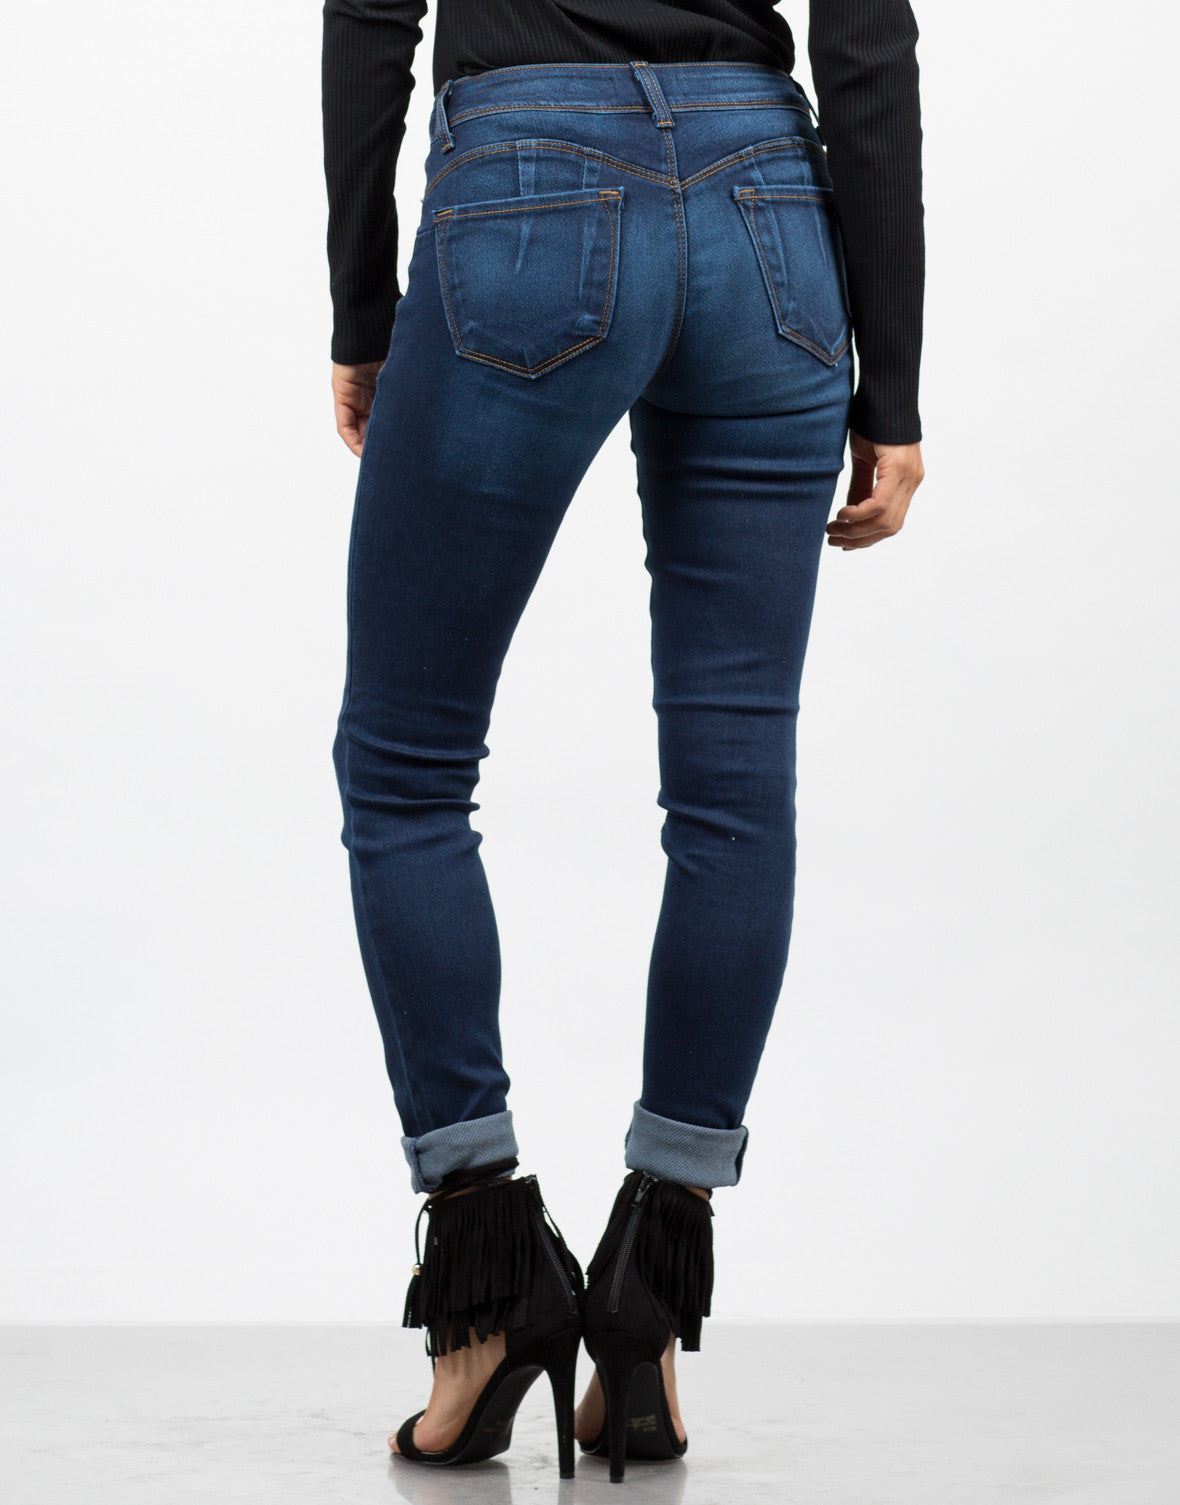 Back View of Mid-Rise Faded Jeans